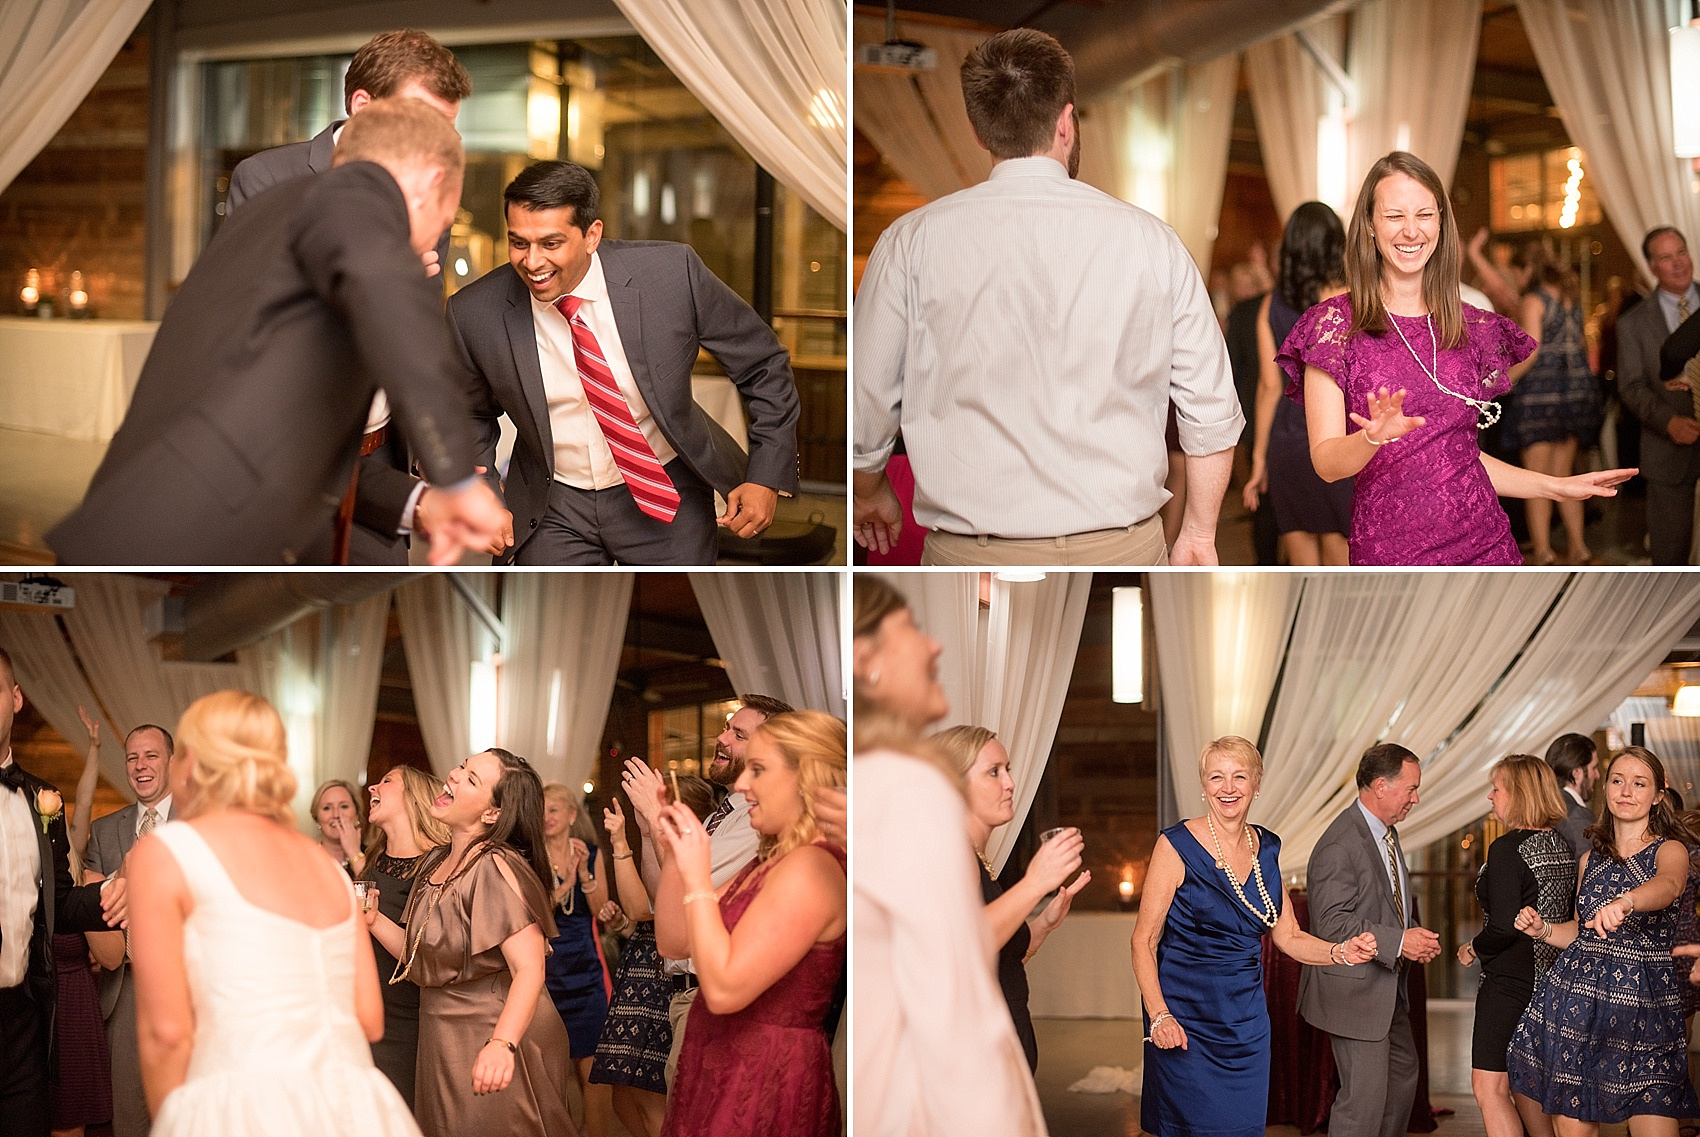 Mikkel Paige Photography photo of a wedding at The Rickhouse, NC.